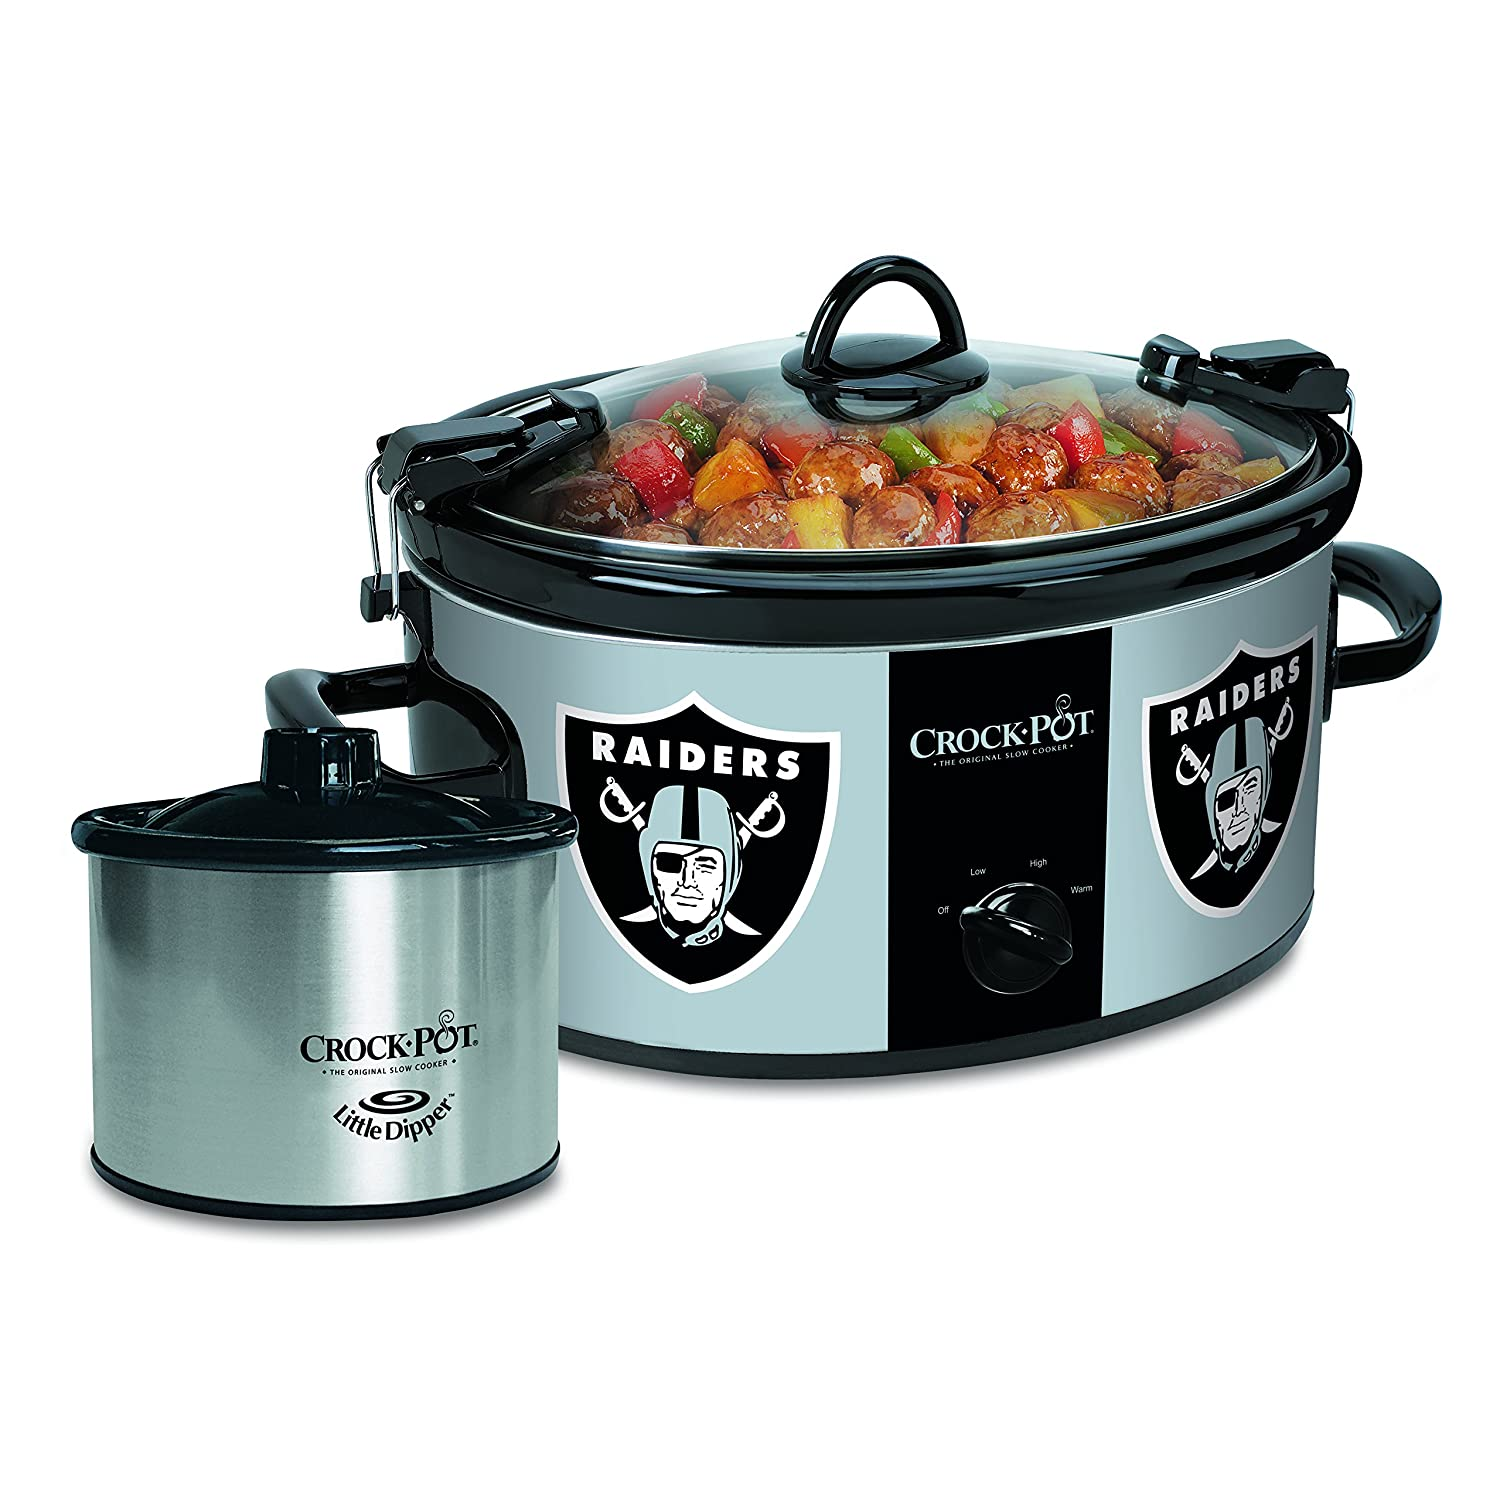 Crock-pot SCCPNFL603-OR Oakland Raiders Slow Cookers, White